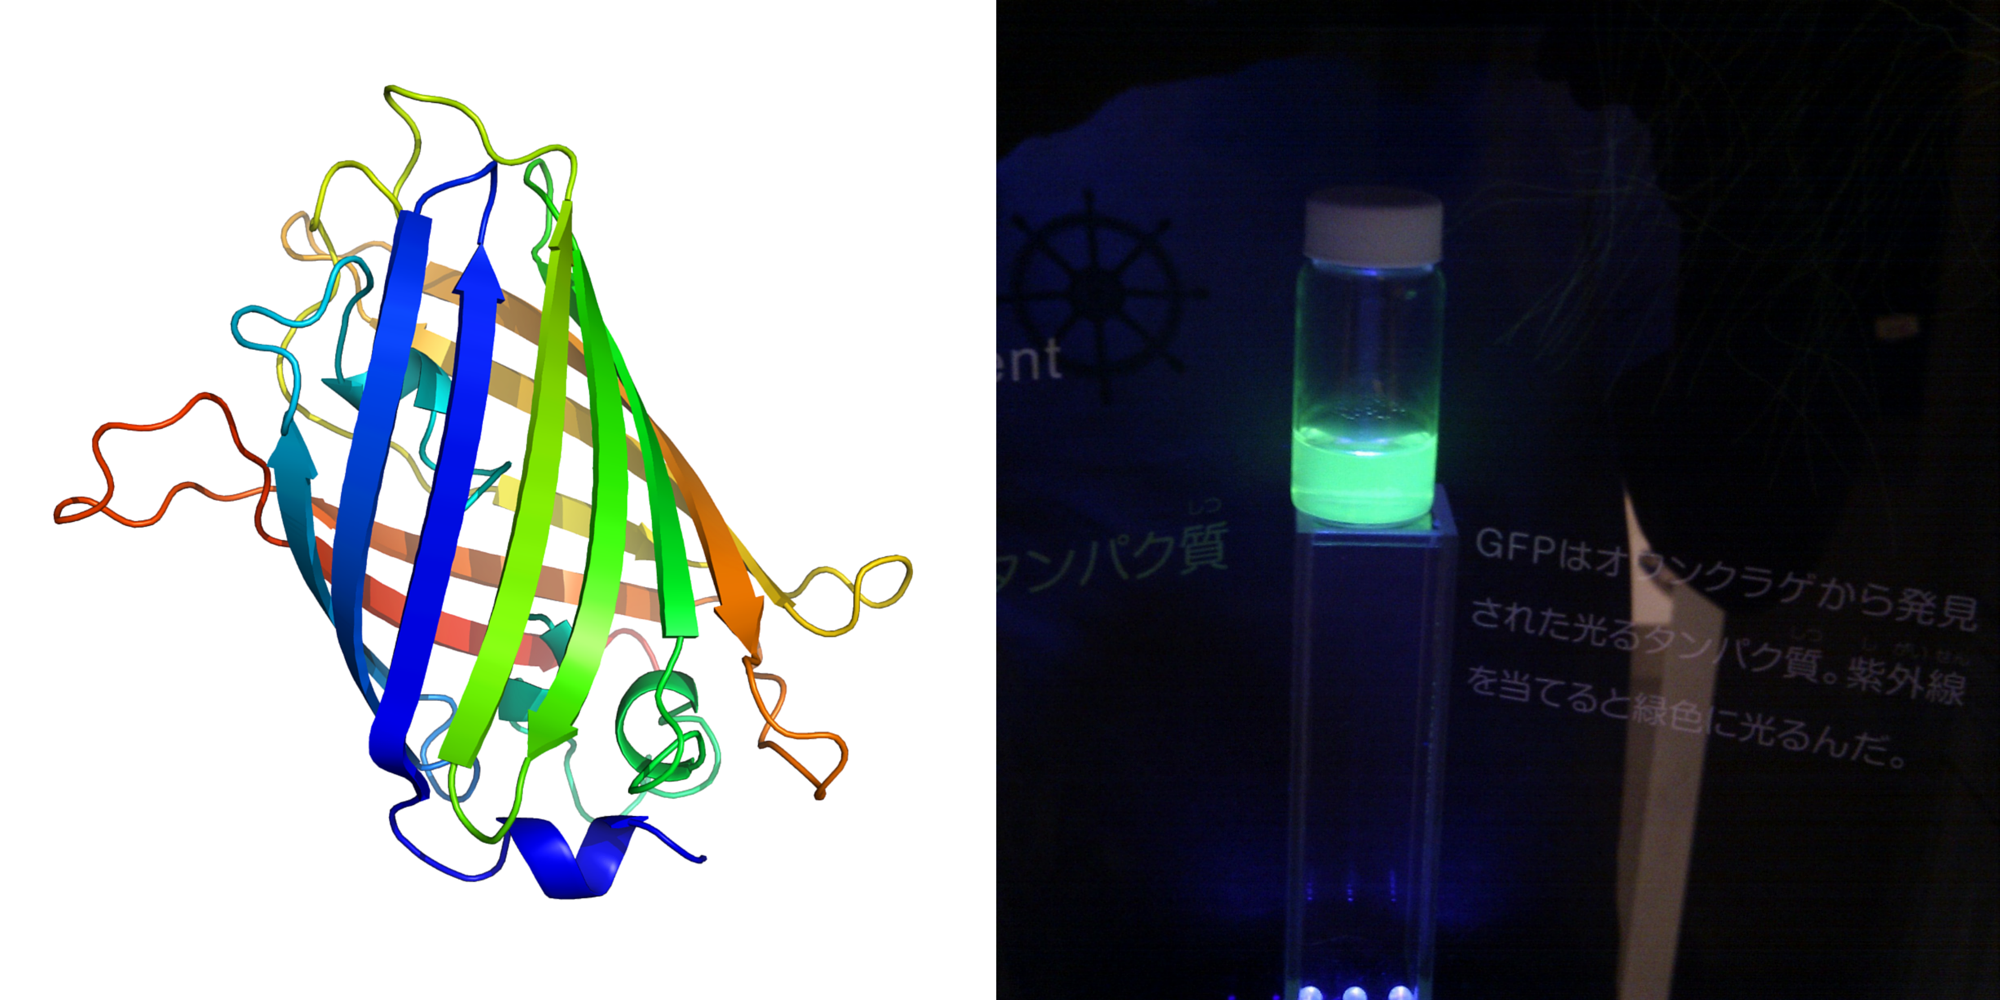 The structure of GFP, showing its almost perfect cylindrical shape (left), and illumination seen in purified GFP (right).   Richard Wheeler/Wikimedia Commons  (CC BY-SA 3.0);  OpenCage/Wikimedia Commons  (CC BY-SA 2.5)